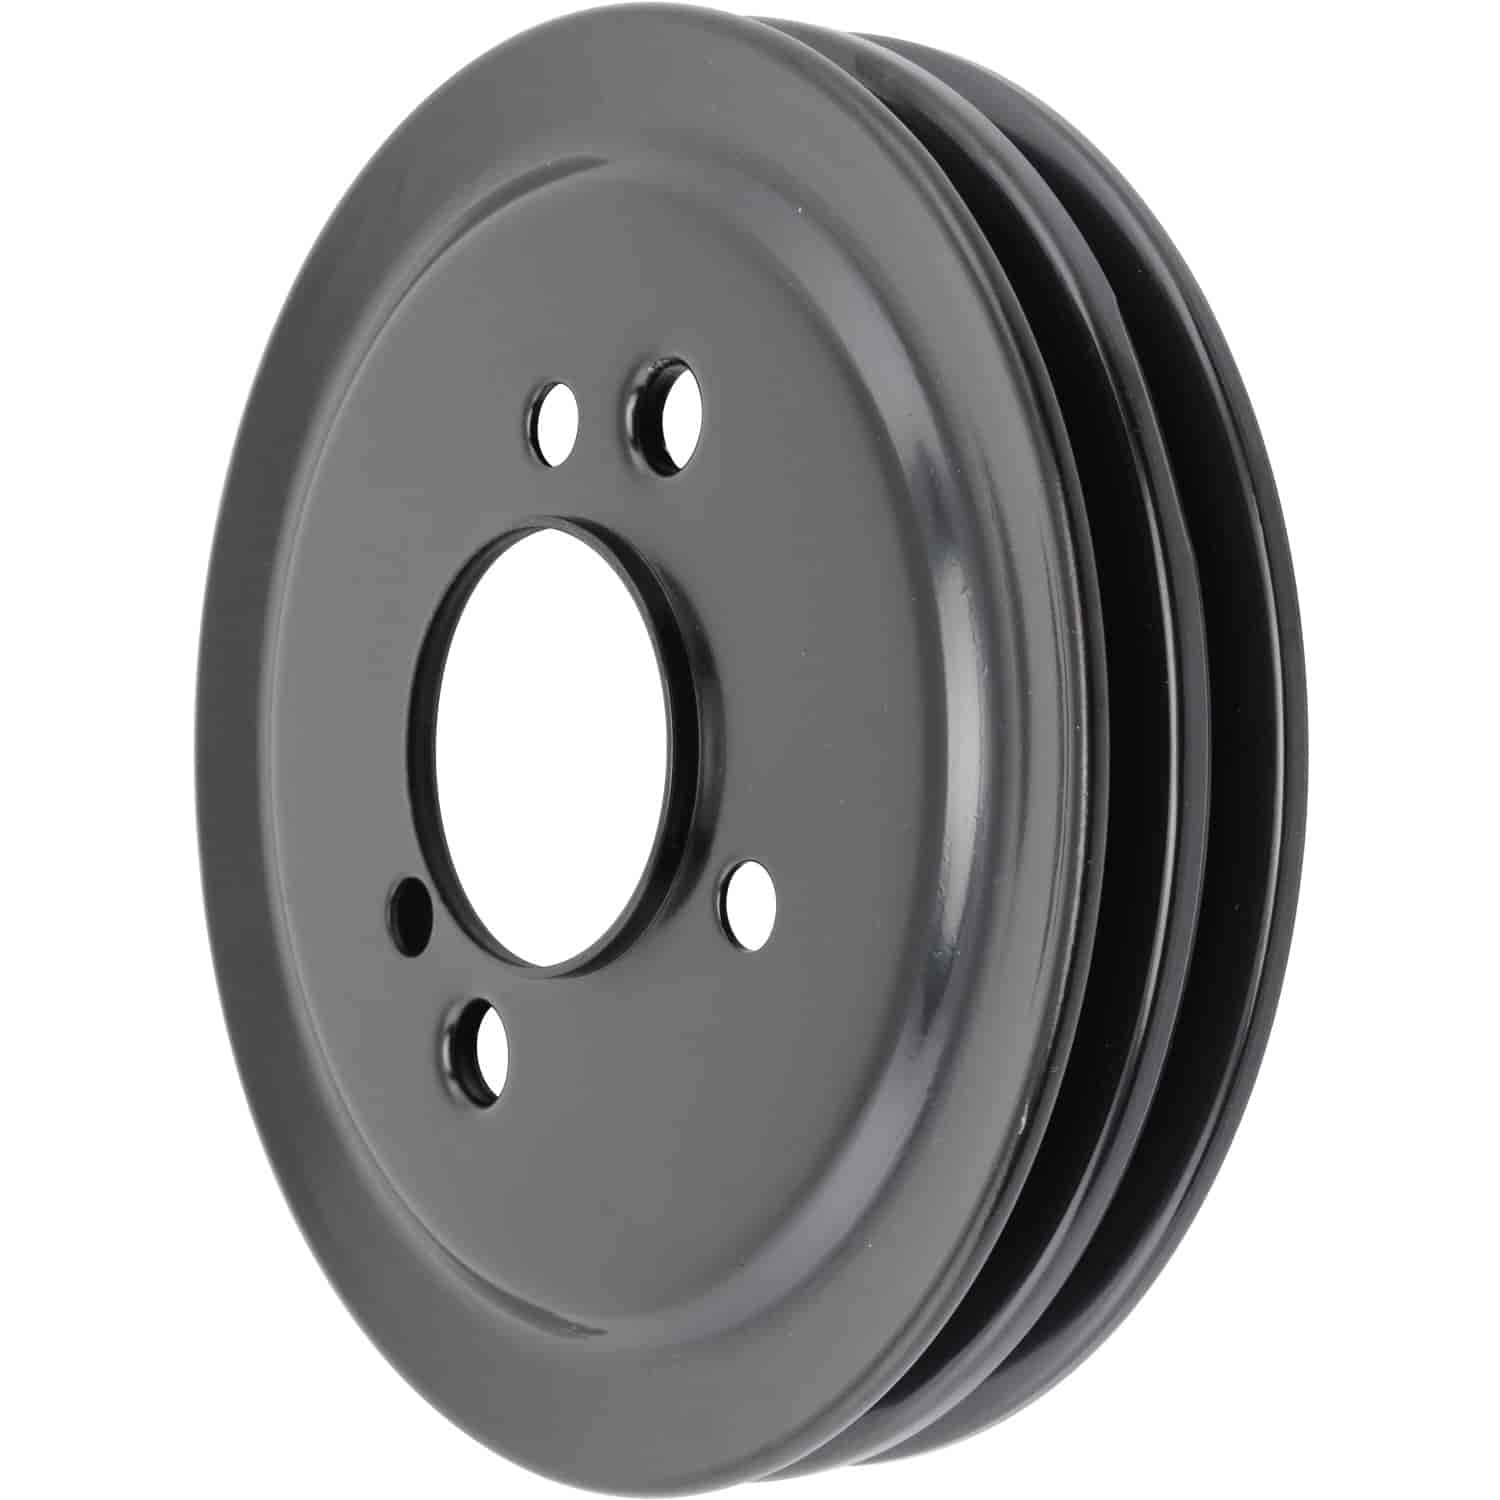 JEGS Performance Products 514124 Crankshaft Pulley Big